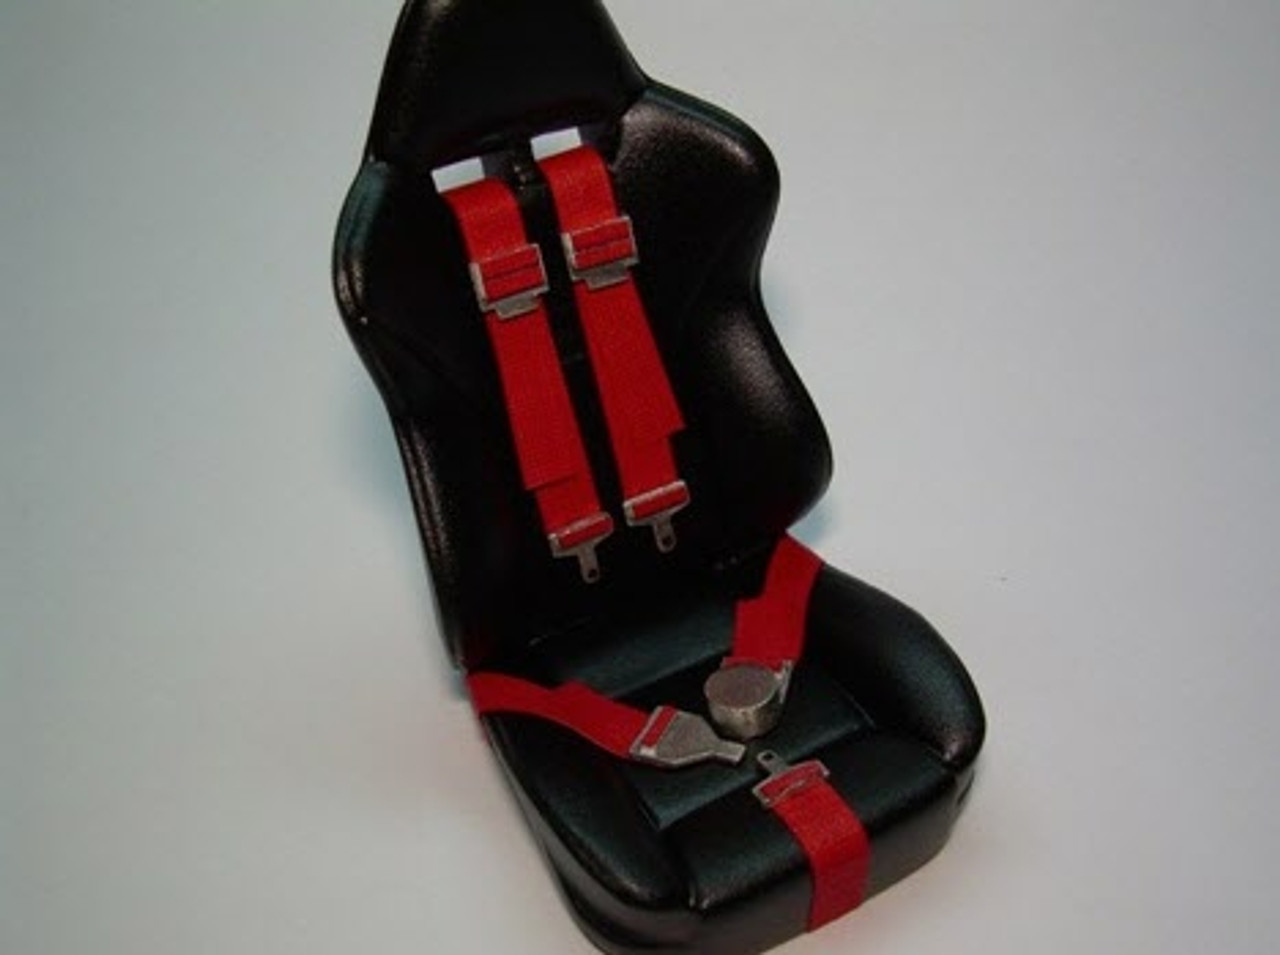 5-Point Racing Harness 1/16